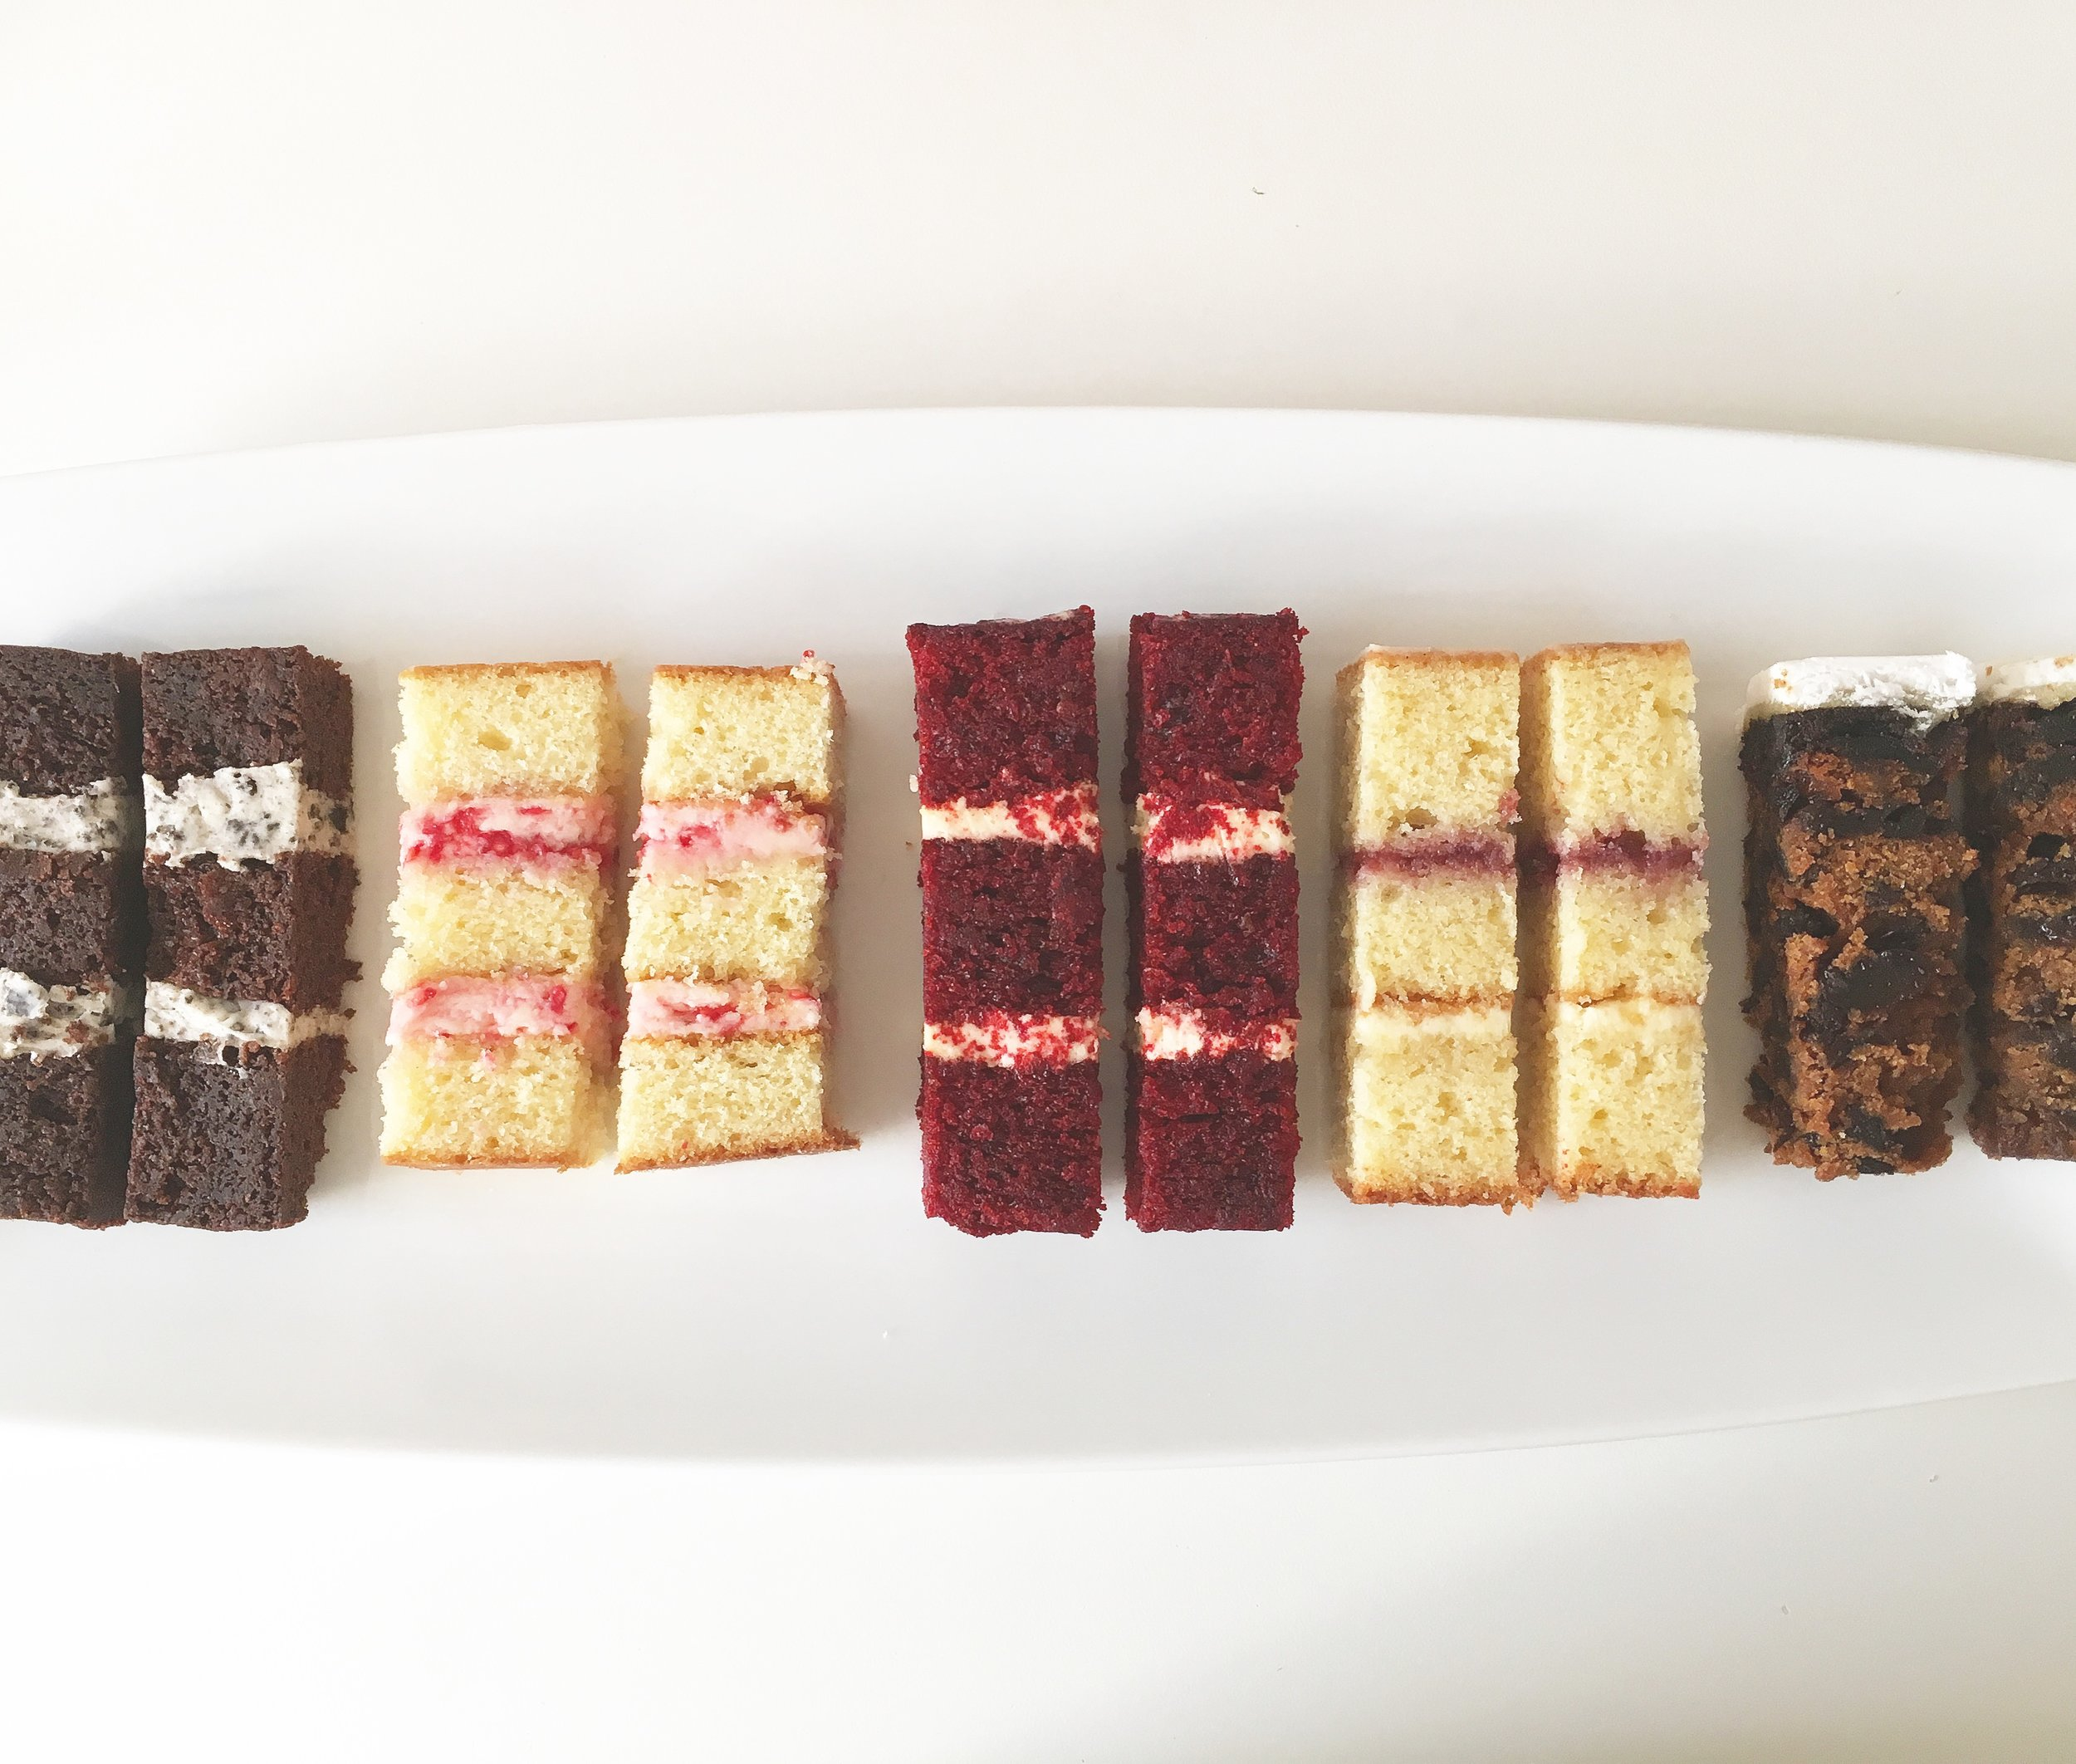 Cake flavours from left to right - Chocolate Oreo, White Chocolate & Raspberry, Red Velvet, Victoria Sponge, Classic Fruit Cake